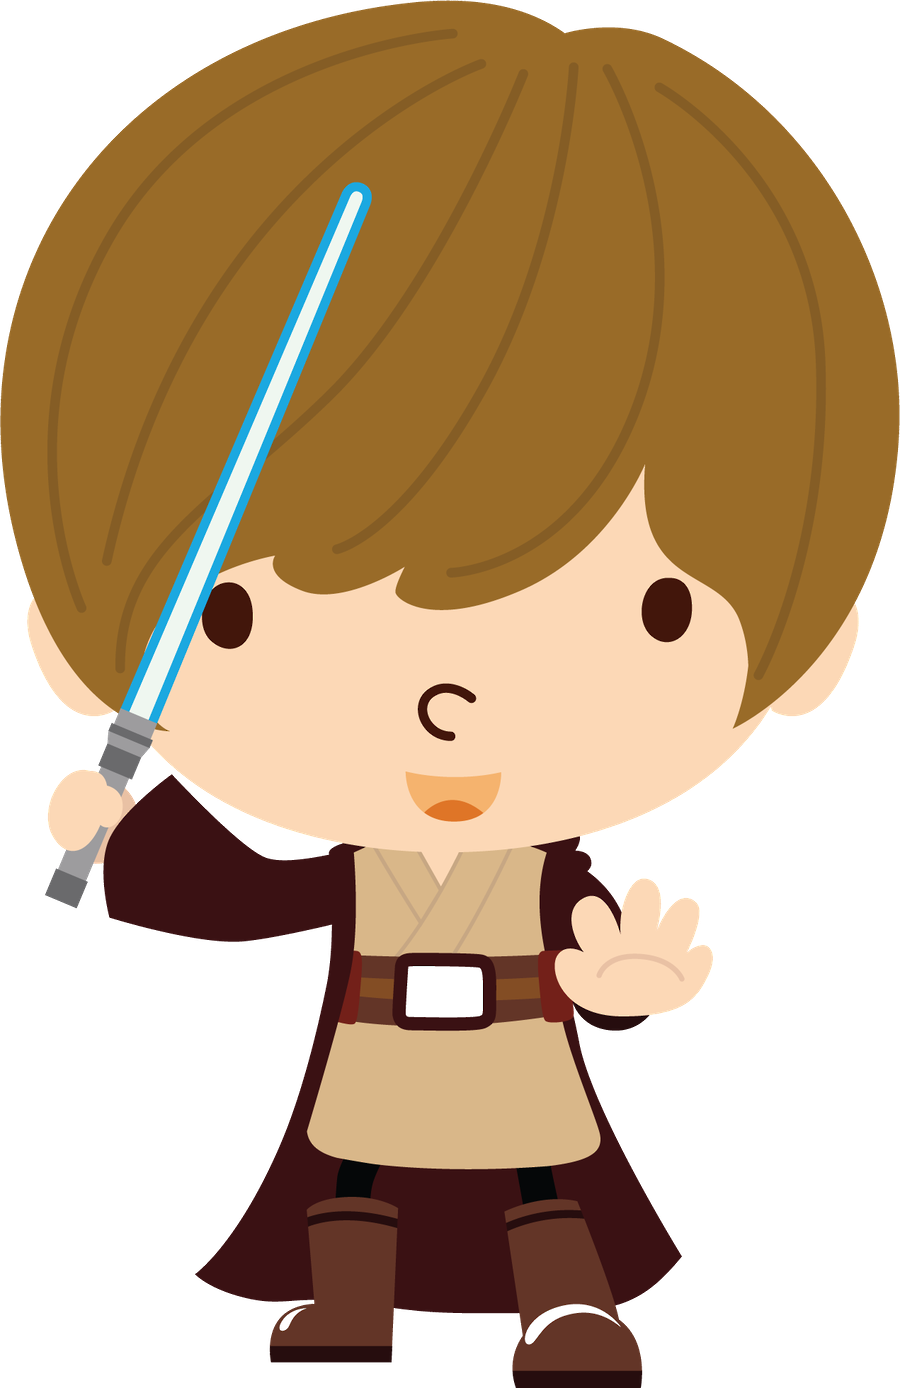 image transparent library Star minus already felt. Wars clipart 1 character